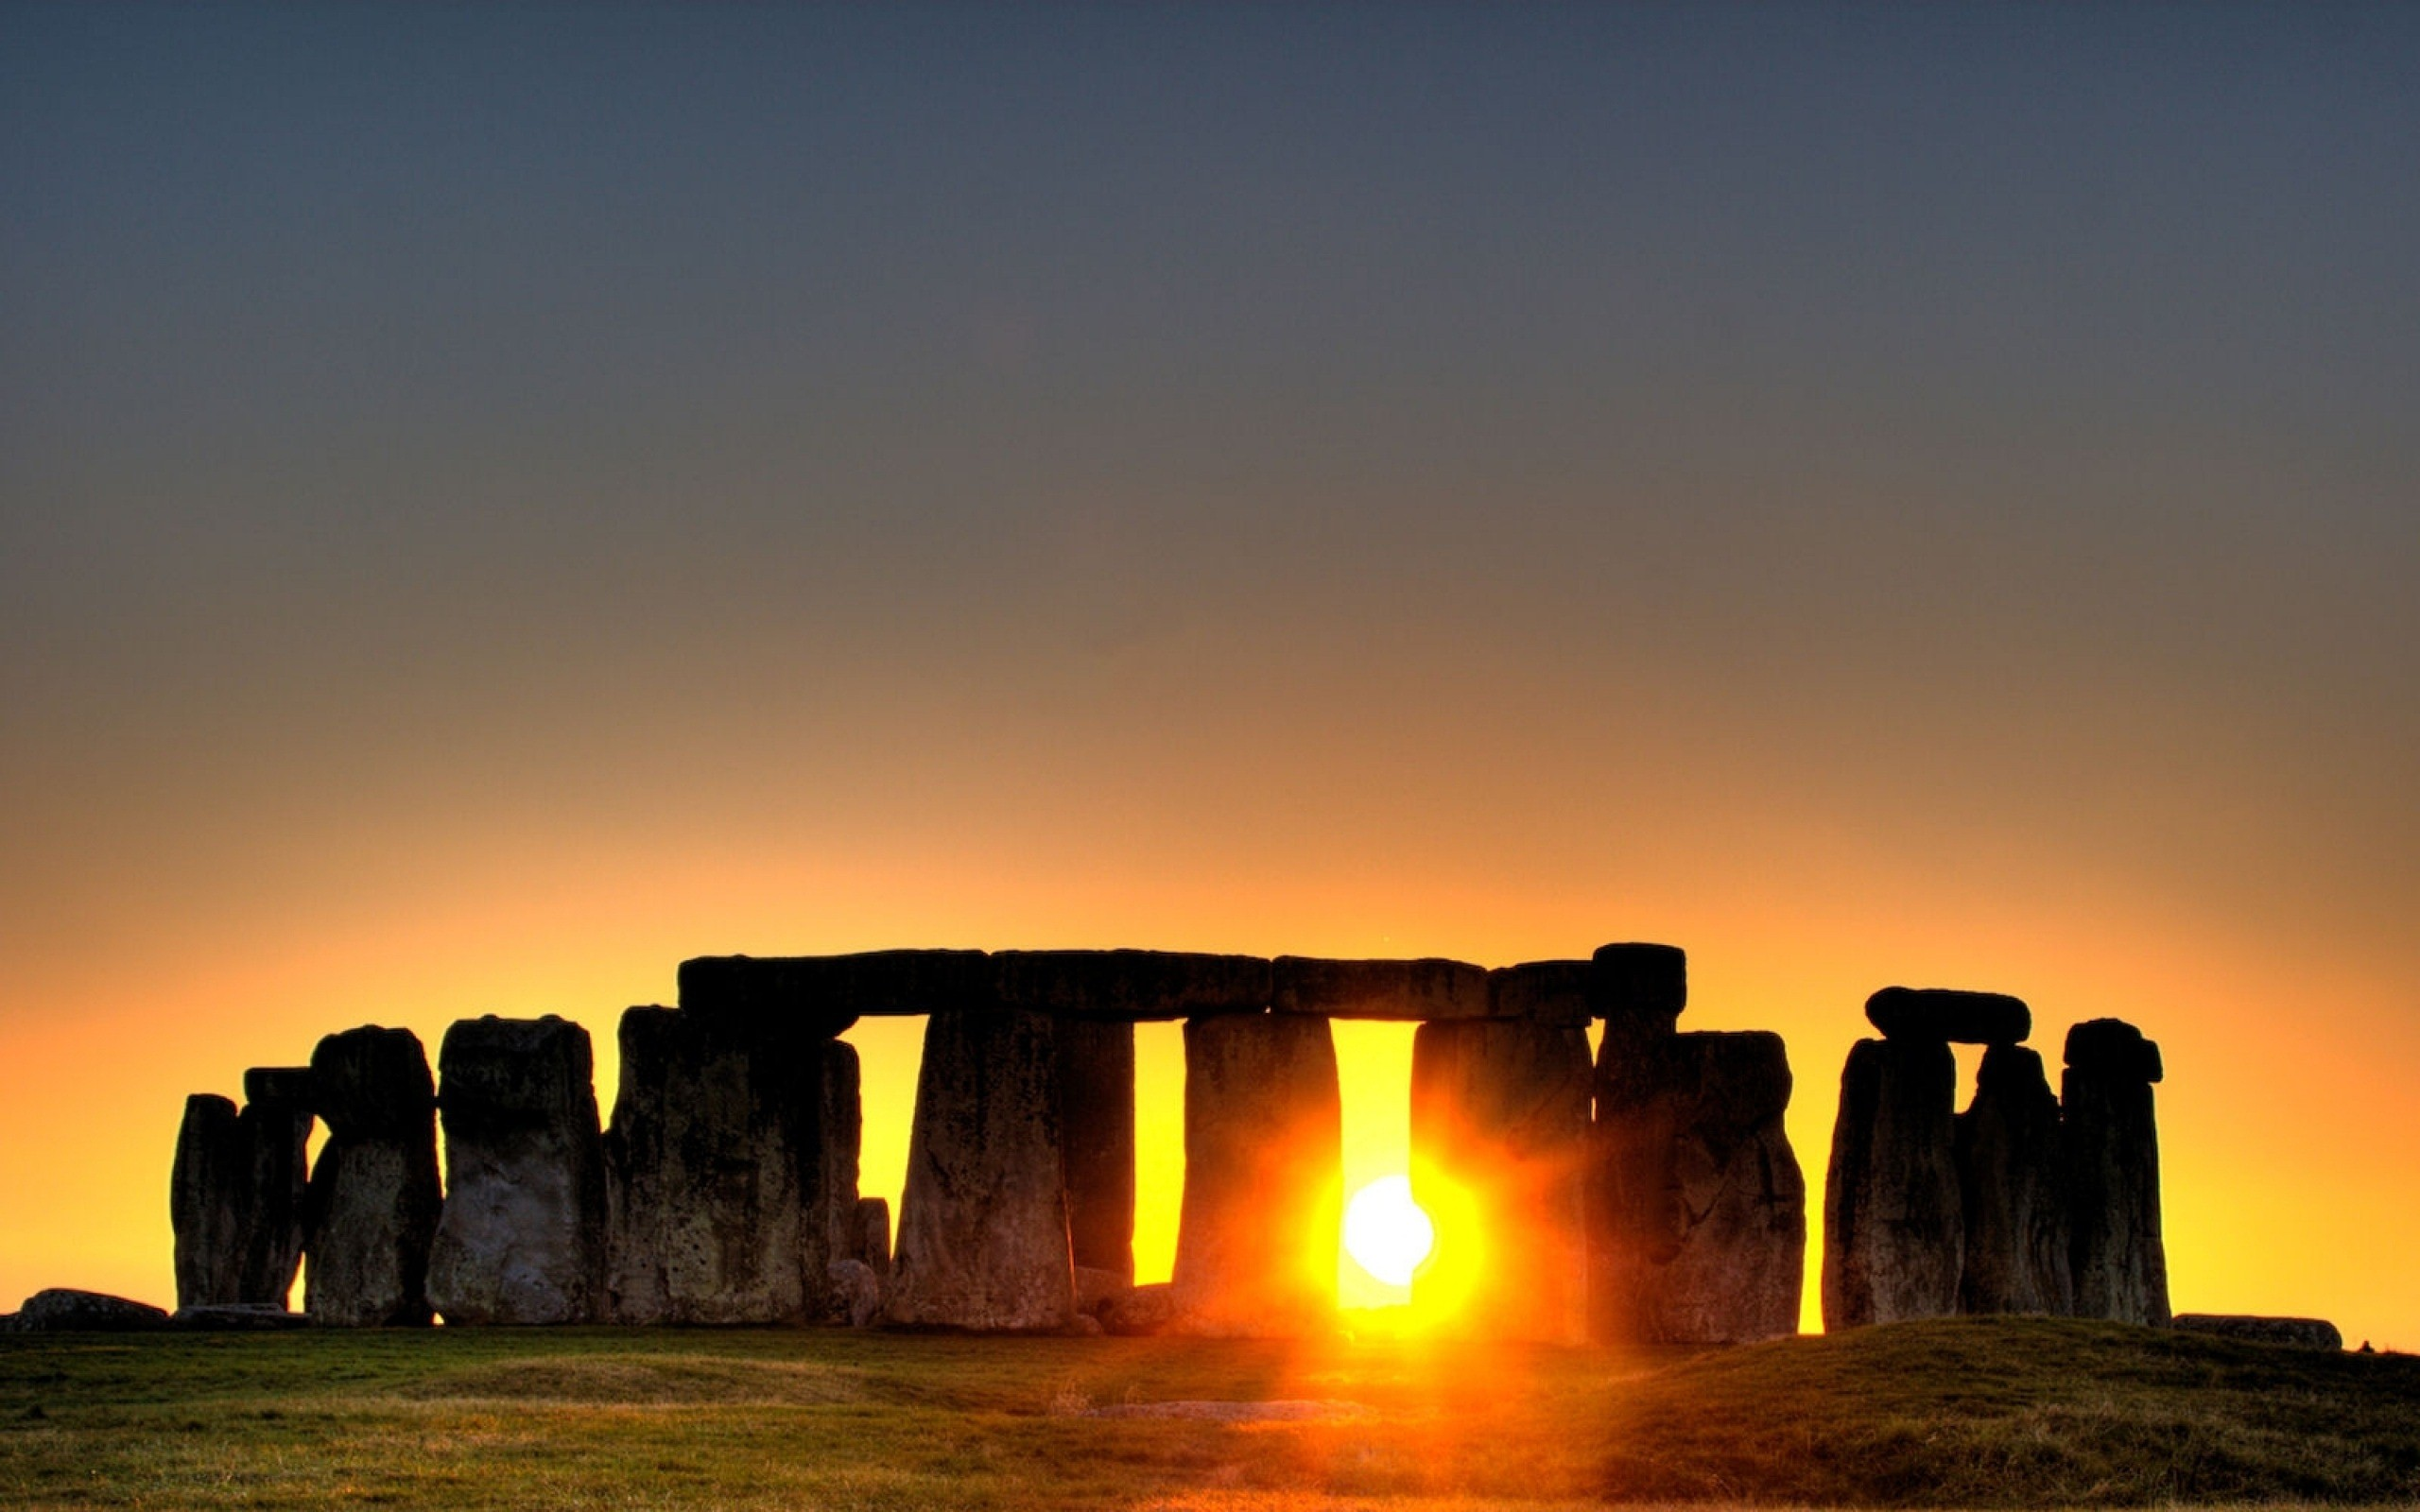 Hd wallpaper england - Stonehenge Sunset Located In England Hd Wallpaper